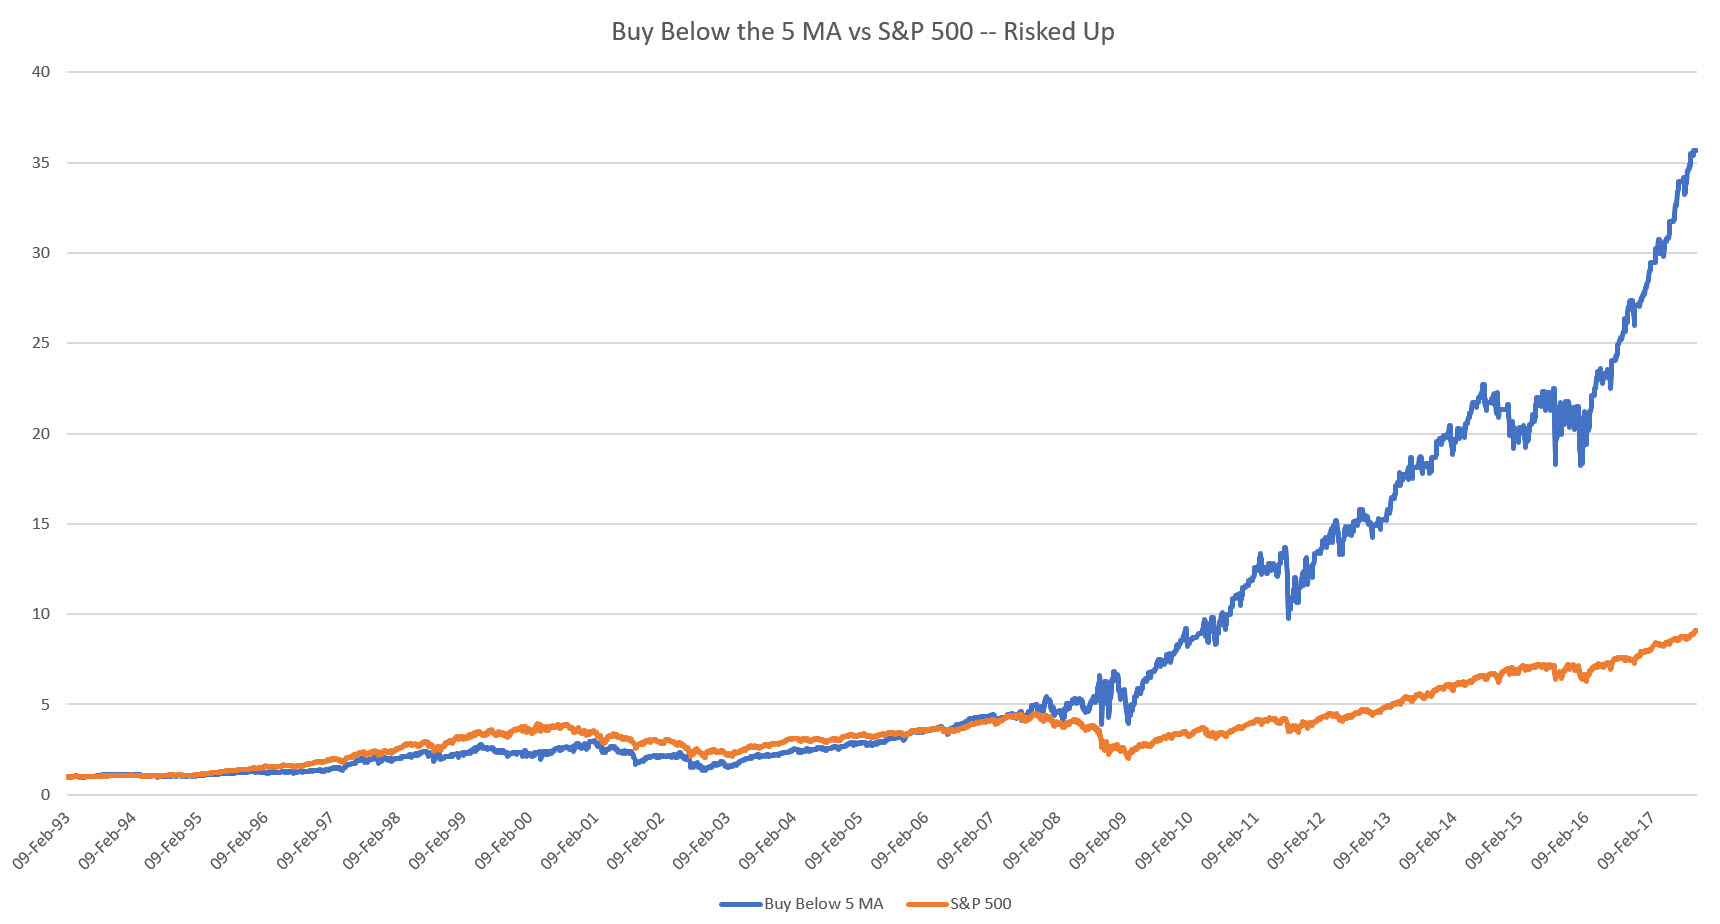 Buying Below MA with same Risk as S&P 500